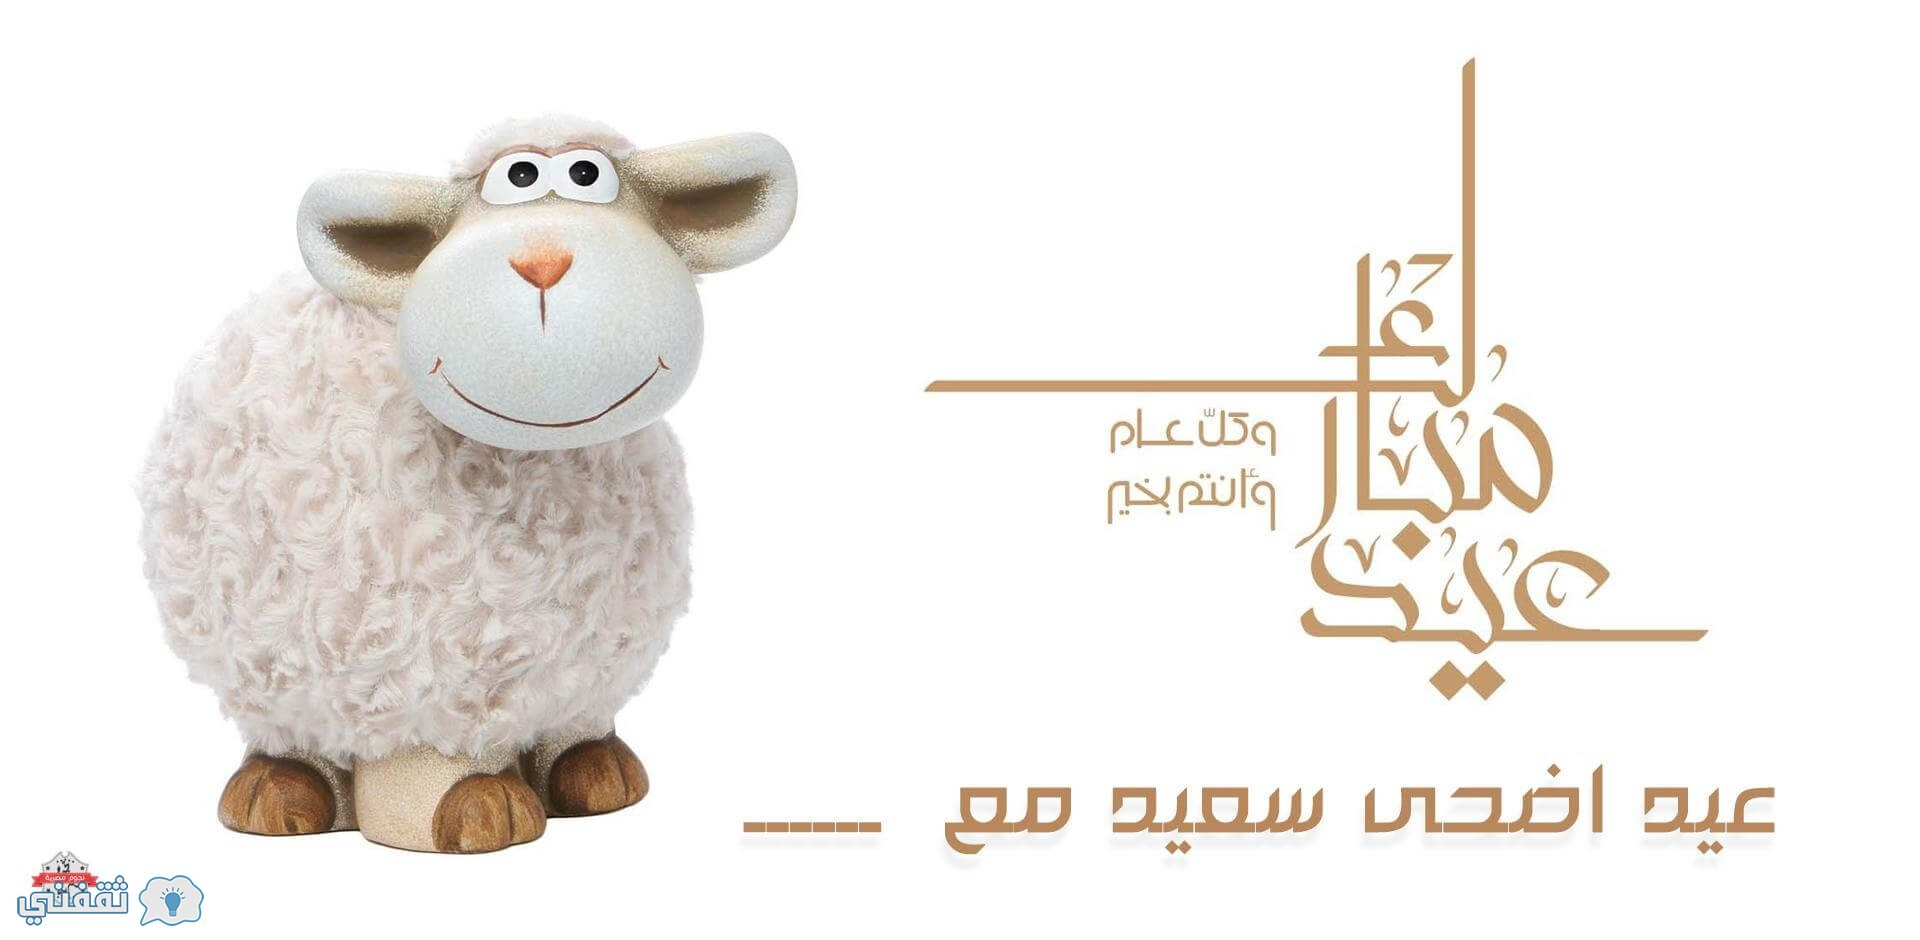 beautiful-sheep-image-he-say-eid-al-adha-mubarak1